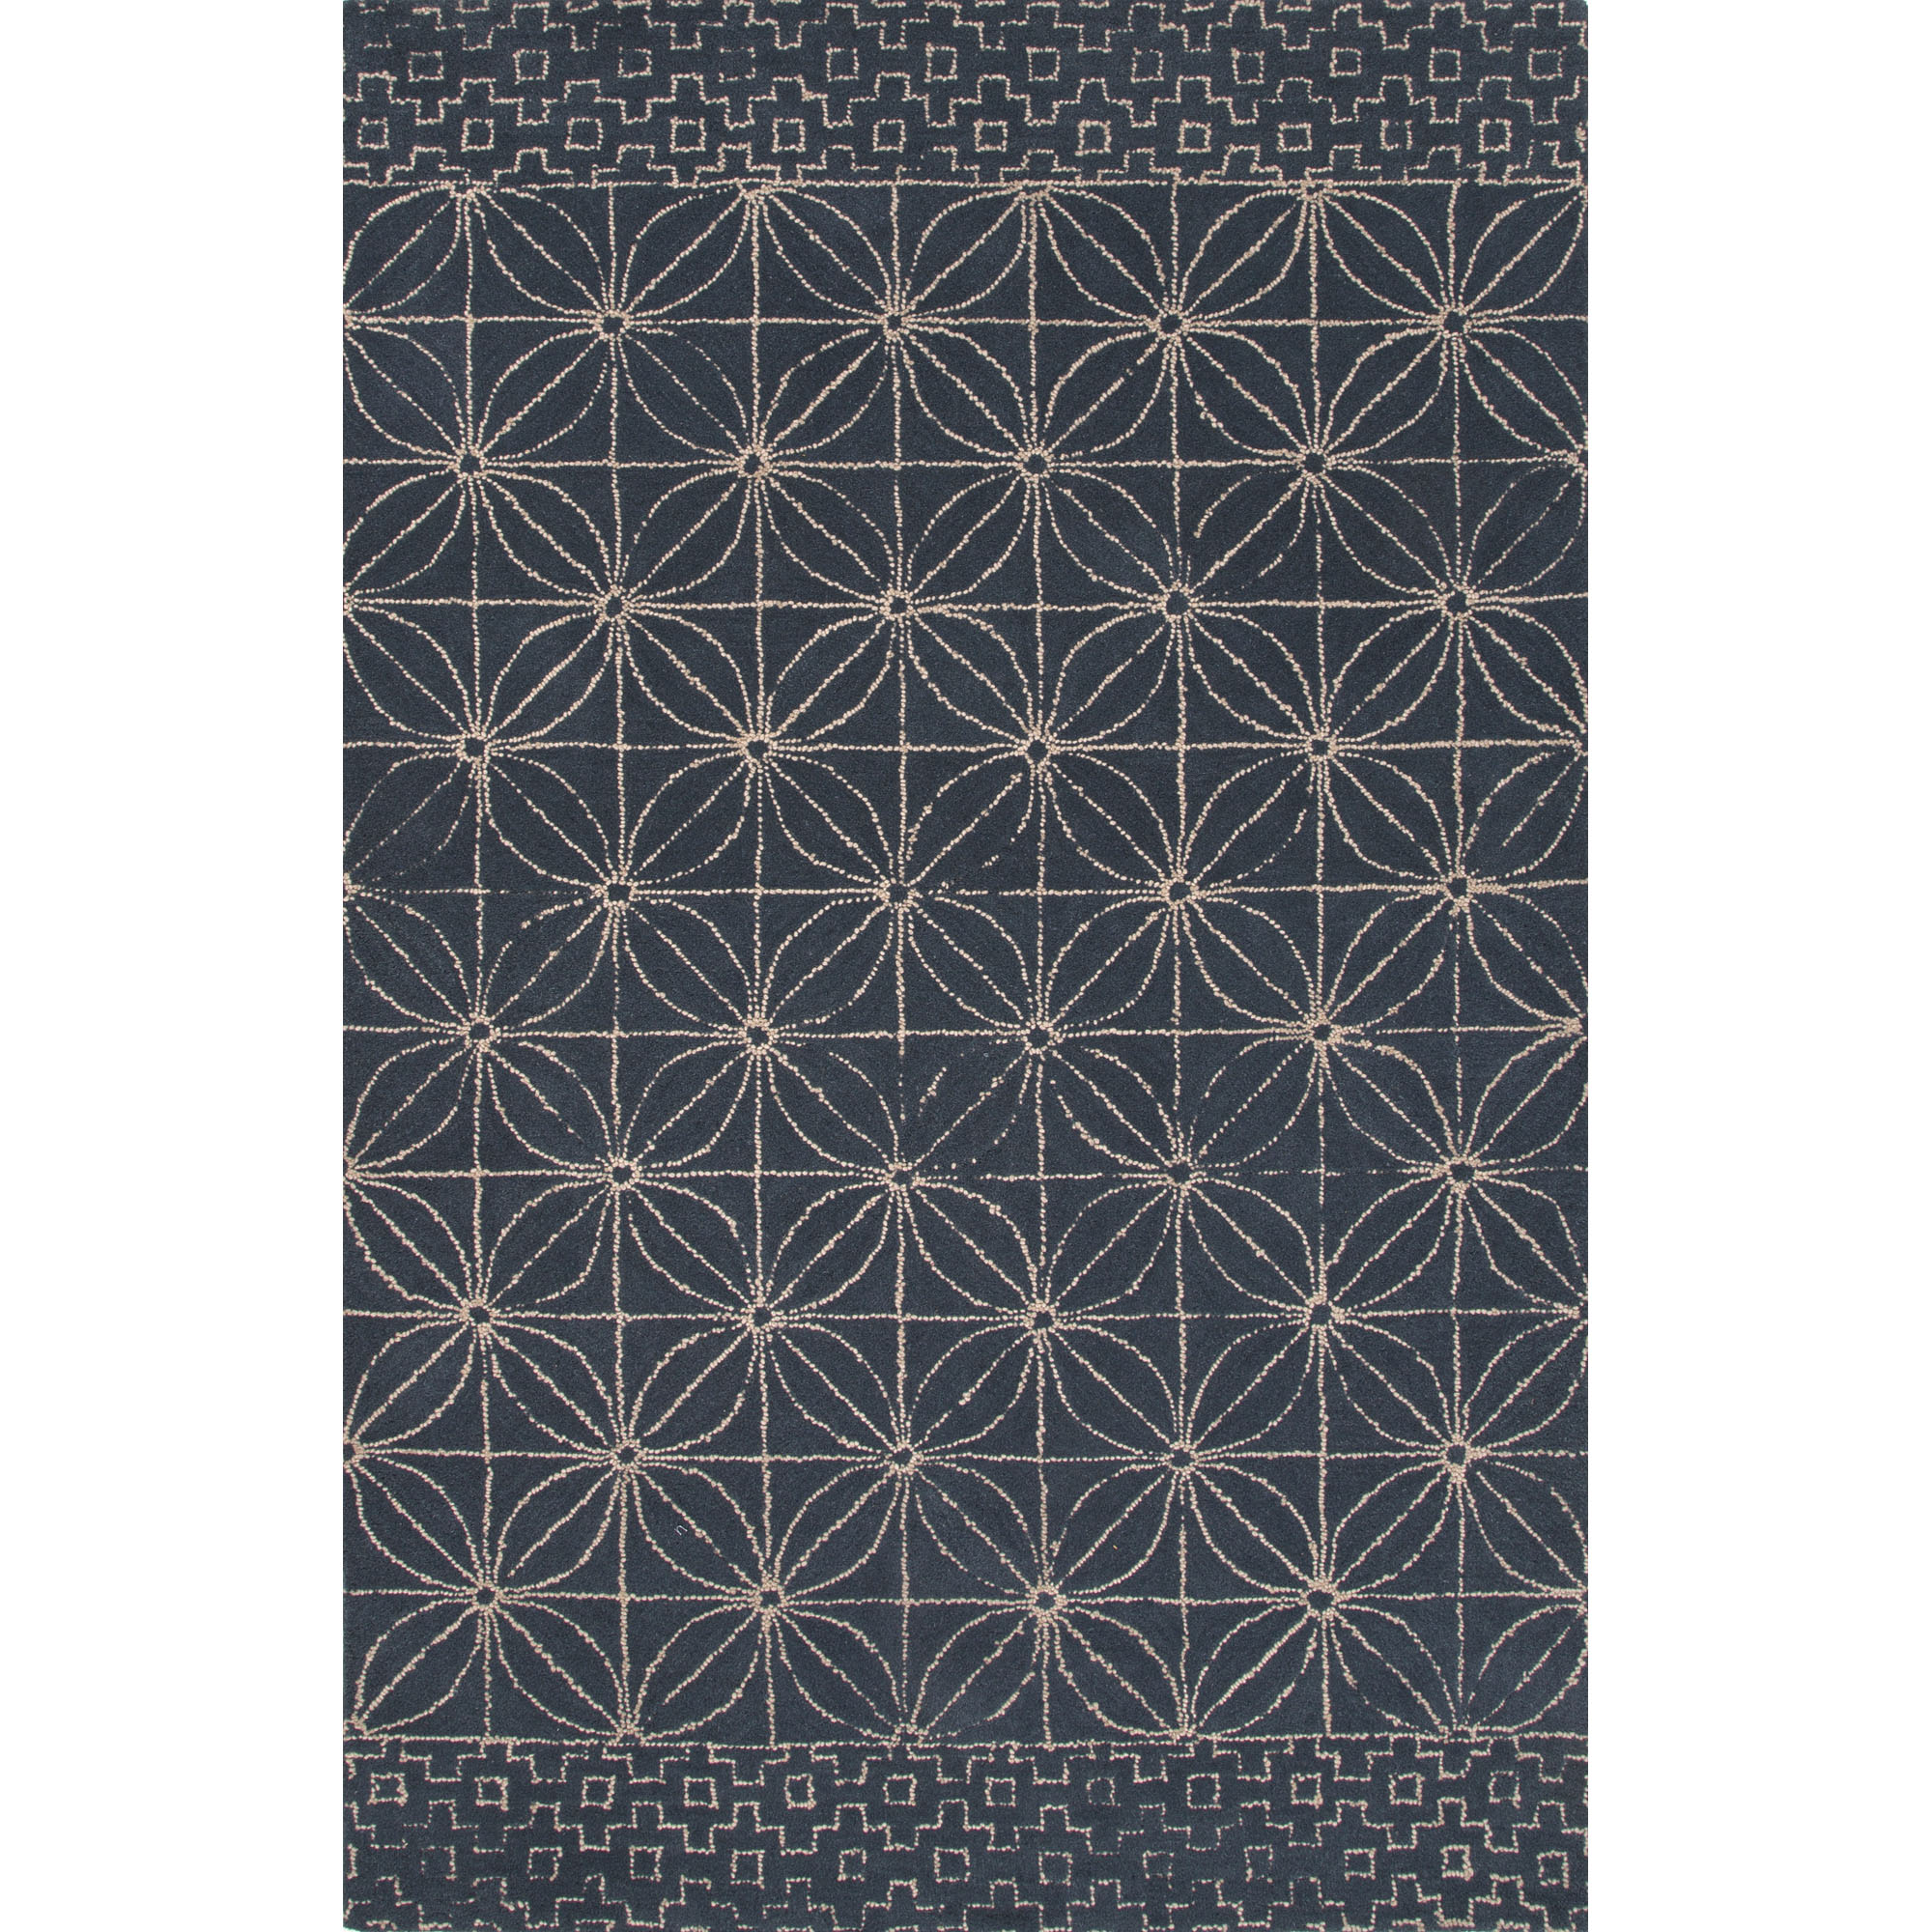 JAIPUR Rugs Traditions Made Modern Tufted 5 x 8 Rug - Item Number: RUG121990